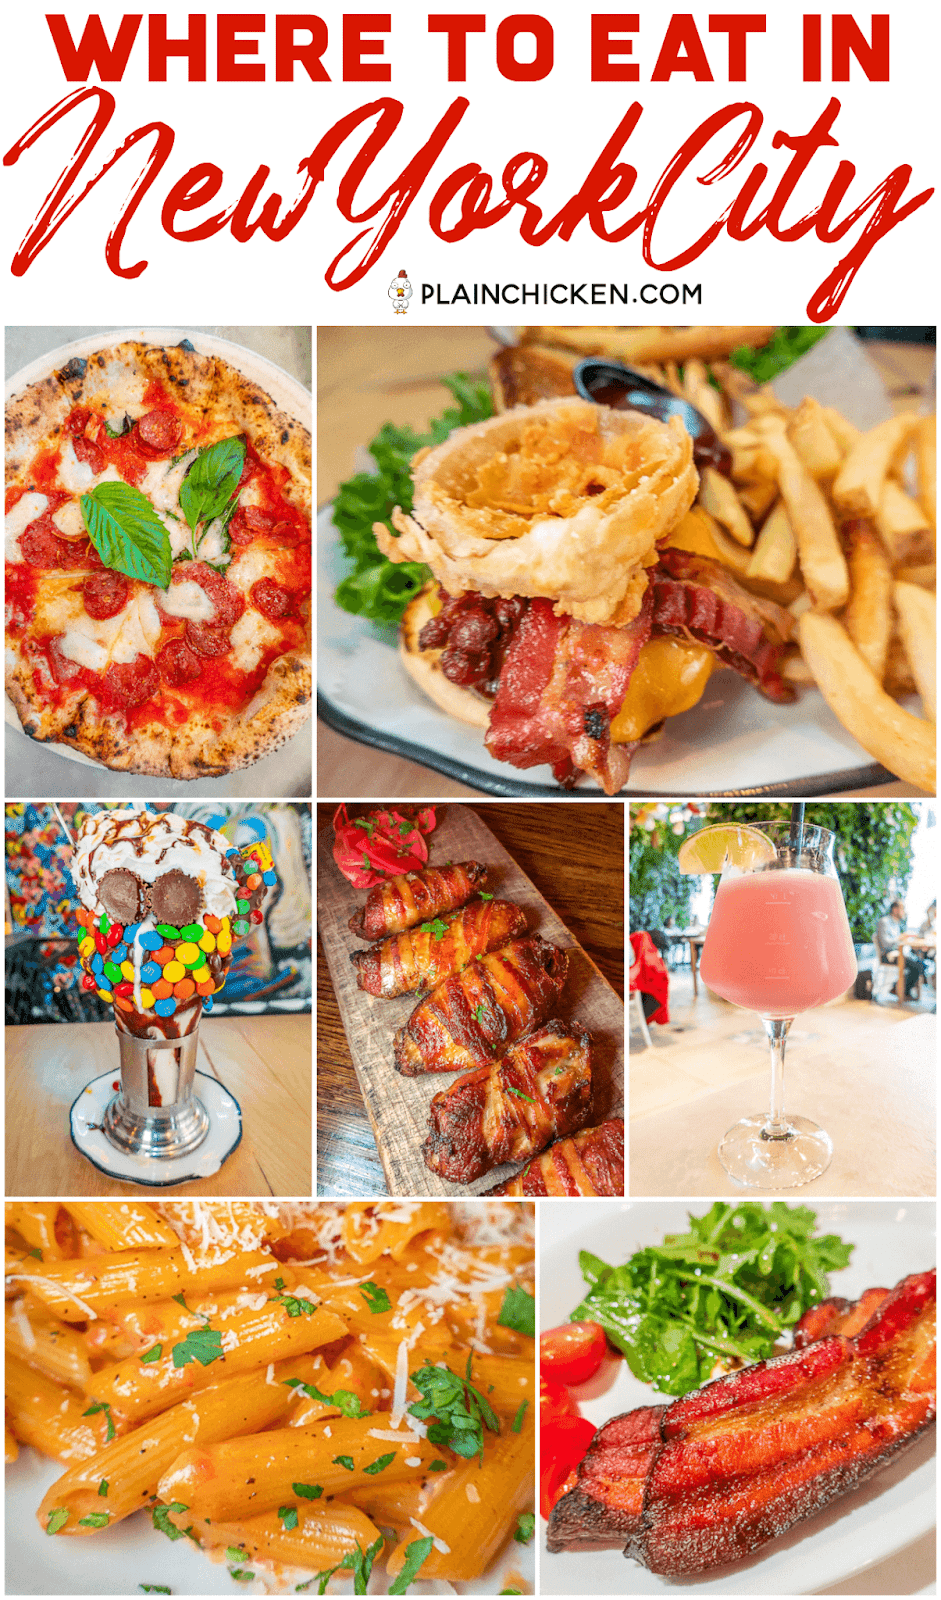 Where to Eat in NYC - six of our favorite places to eat in New York City. Burgers, steaks, PIZZA, pasta and crazy milkshakes. Save this list for your next trip! #travel #nyc